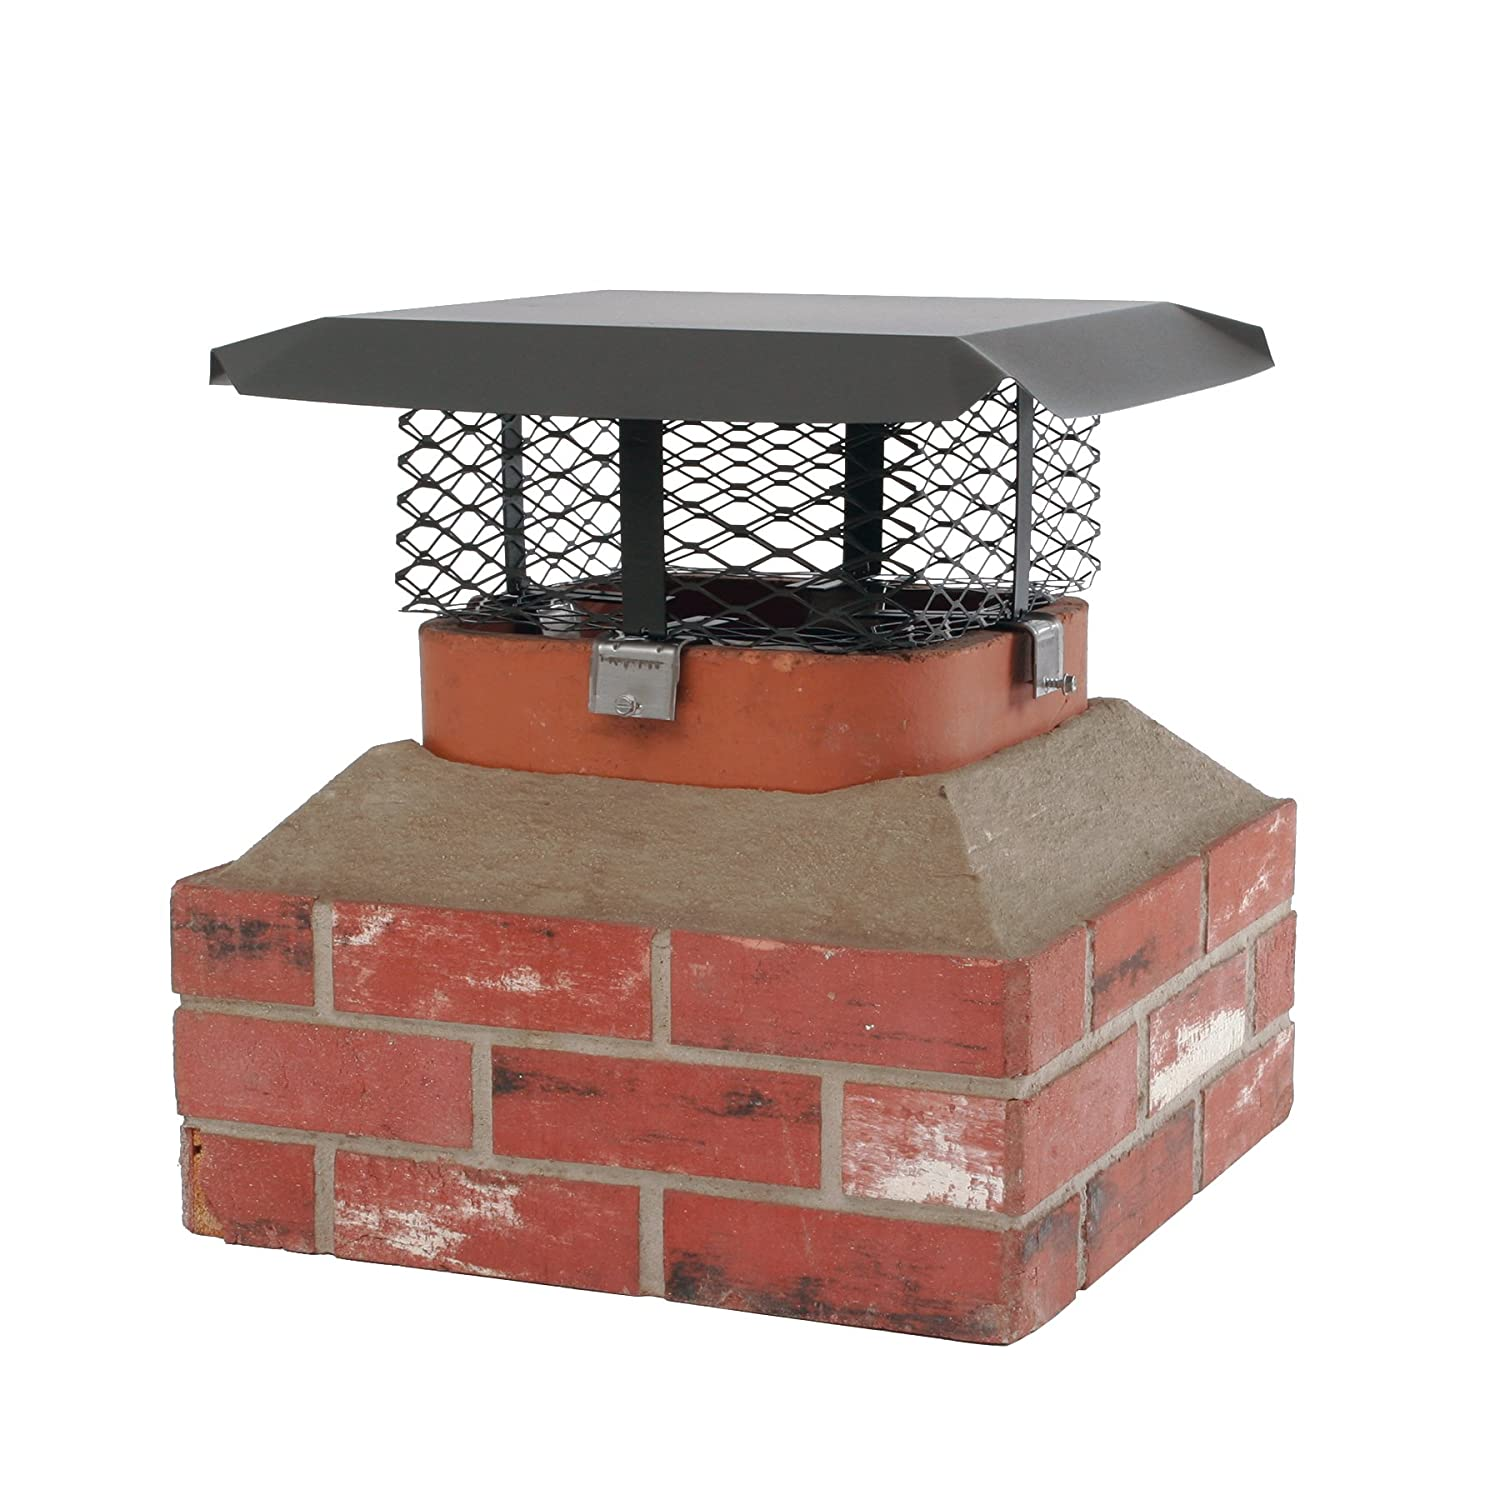 Shelter SCADJ-S Adjustable Clamp On Black Galvanized Steel Single Flue Chimney Cap HY-C Company